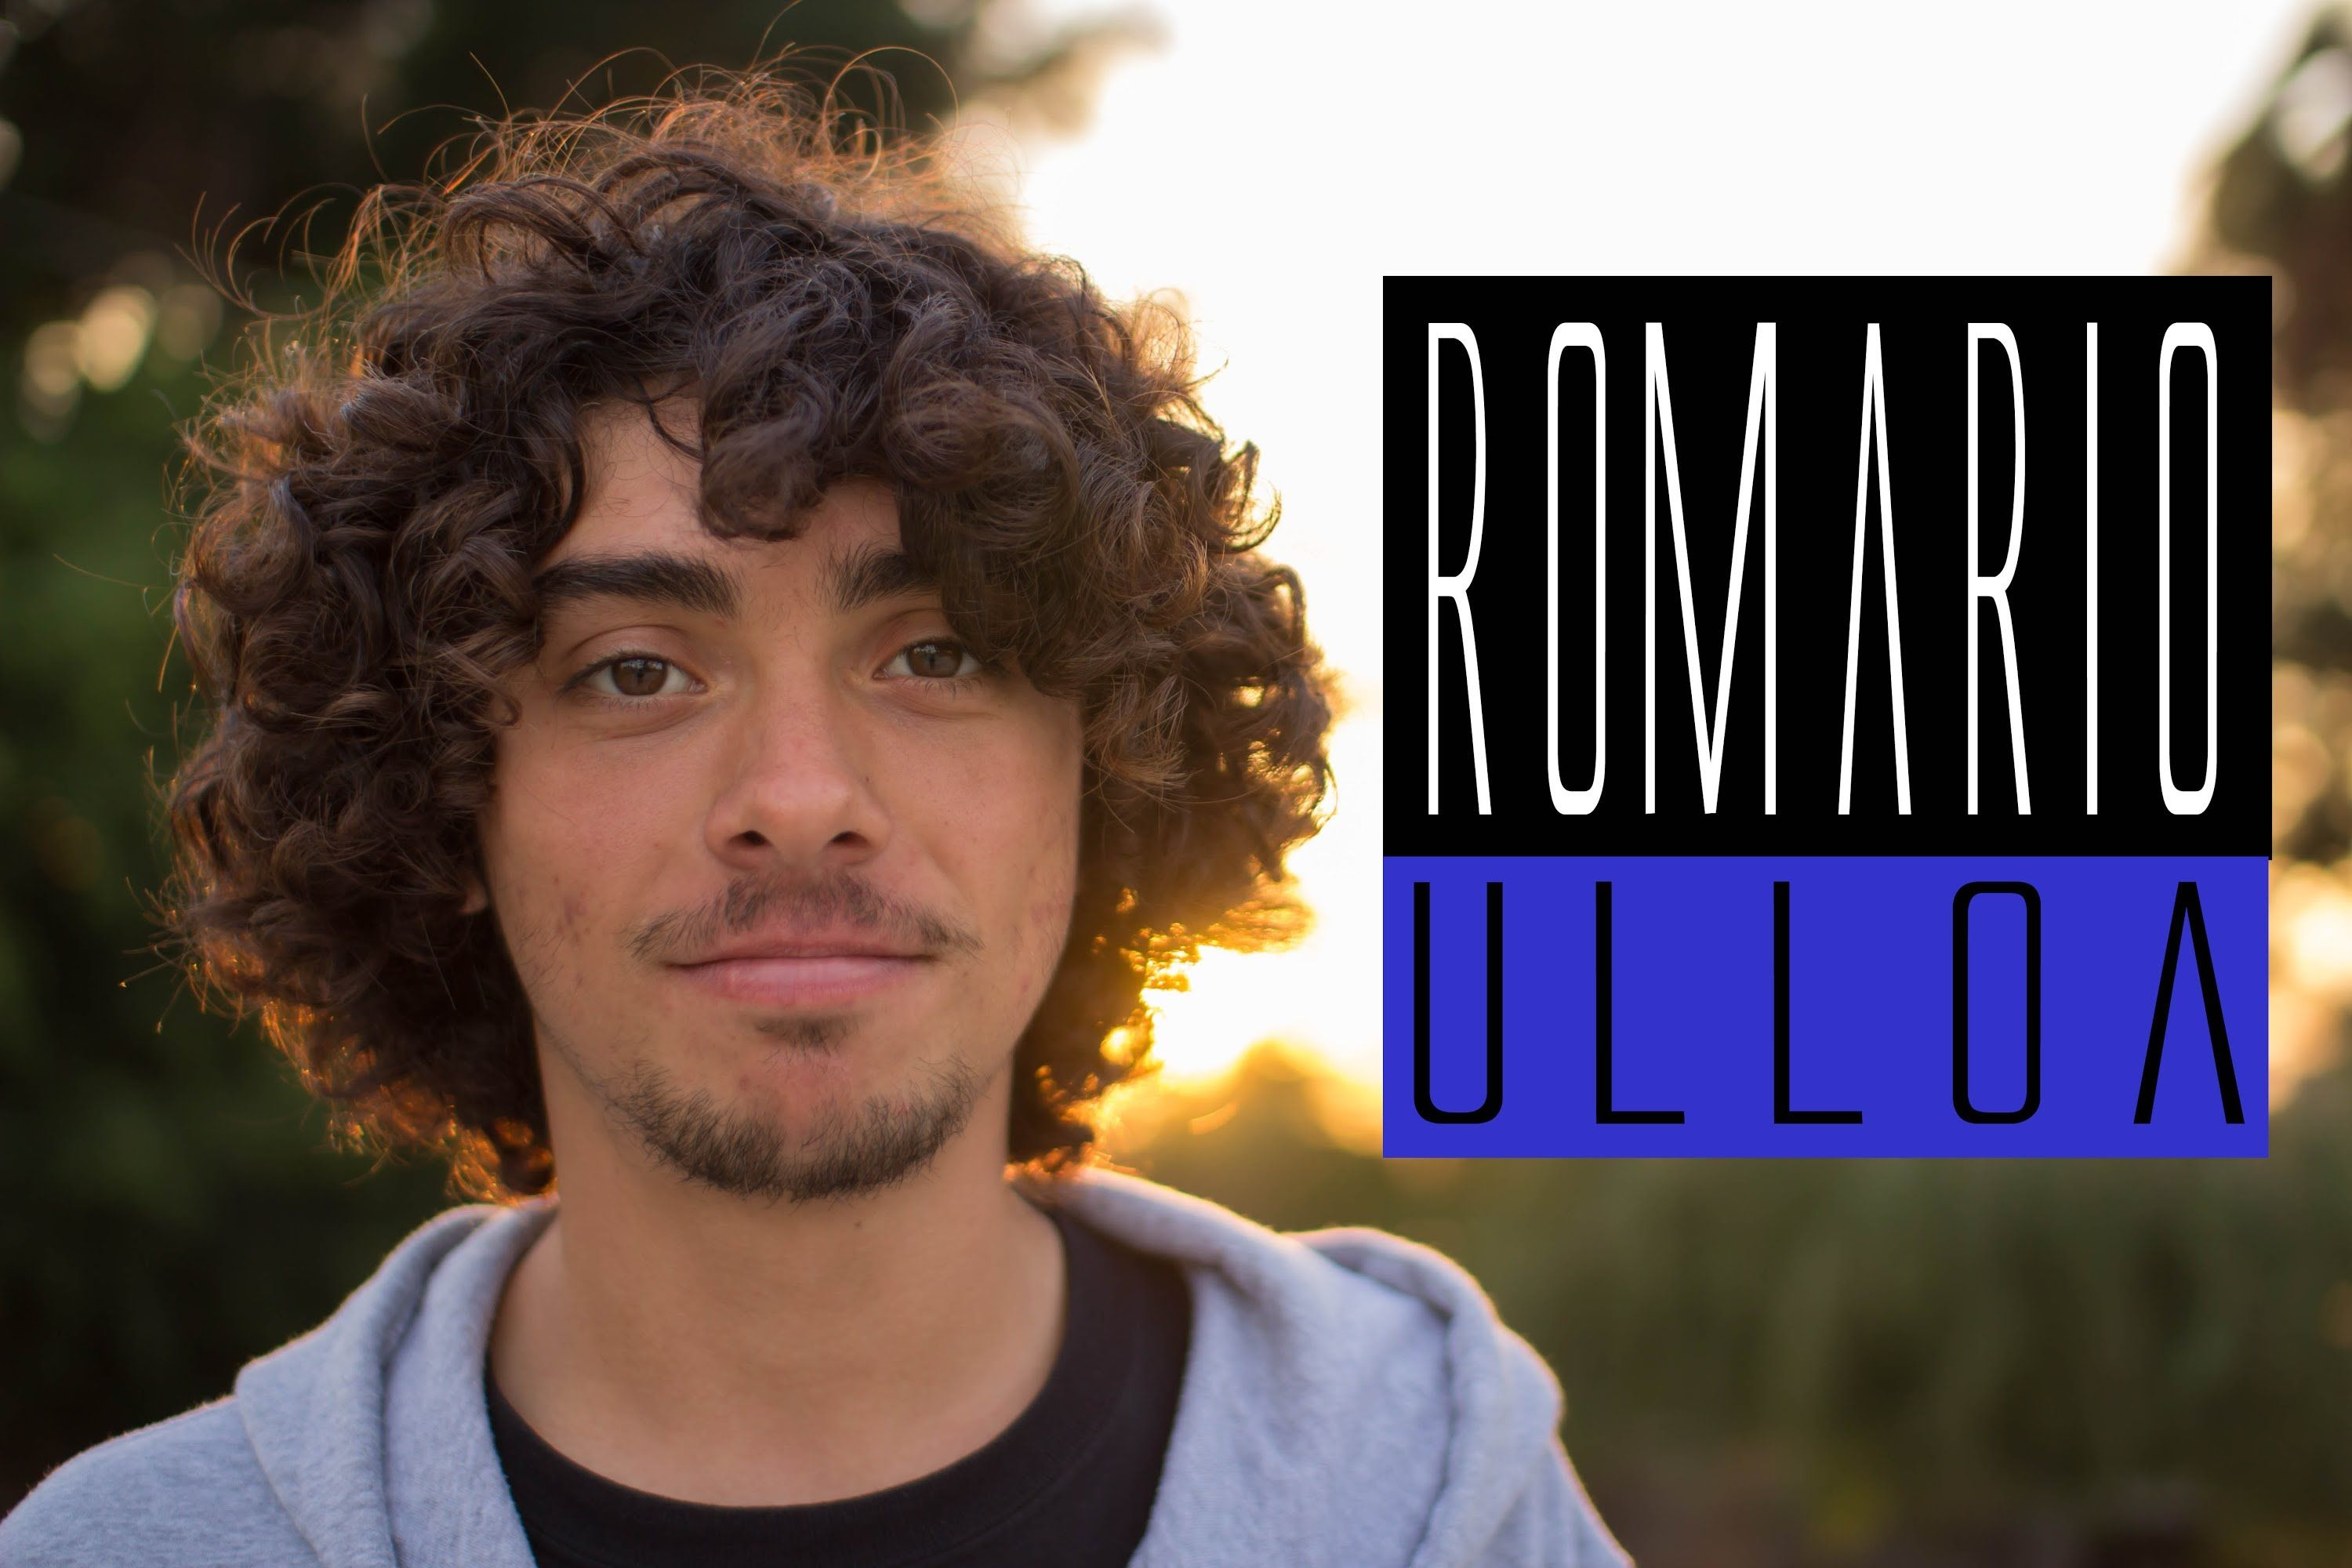 SPONSOR ME VIDEO - 18 YEARS OLD ROMARIO ULLOA - HOLLENBECK SKATE PLAZA - http://DAILYSKATETUBE.COM/sponsor-me-video-18-years-old-romario-ulloa-hollenbeck-skate-plaza/ - http://www.youtube.com/watch?v=vPPSneF0k-Y&feature=youtube_gdata  Sponsor me video starring 18 years old Romario Ulloa at Hollenbeck skate plaza. If any company is interested please contact through email. email: tomopedia@gmail.com Follow Romario Ulloa... - hollenbeck, plaza, ROMARIO, skate, sponsor, ULLOA,